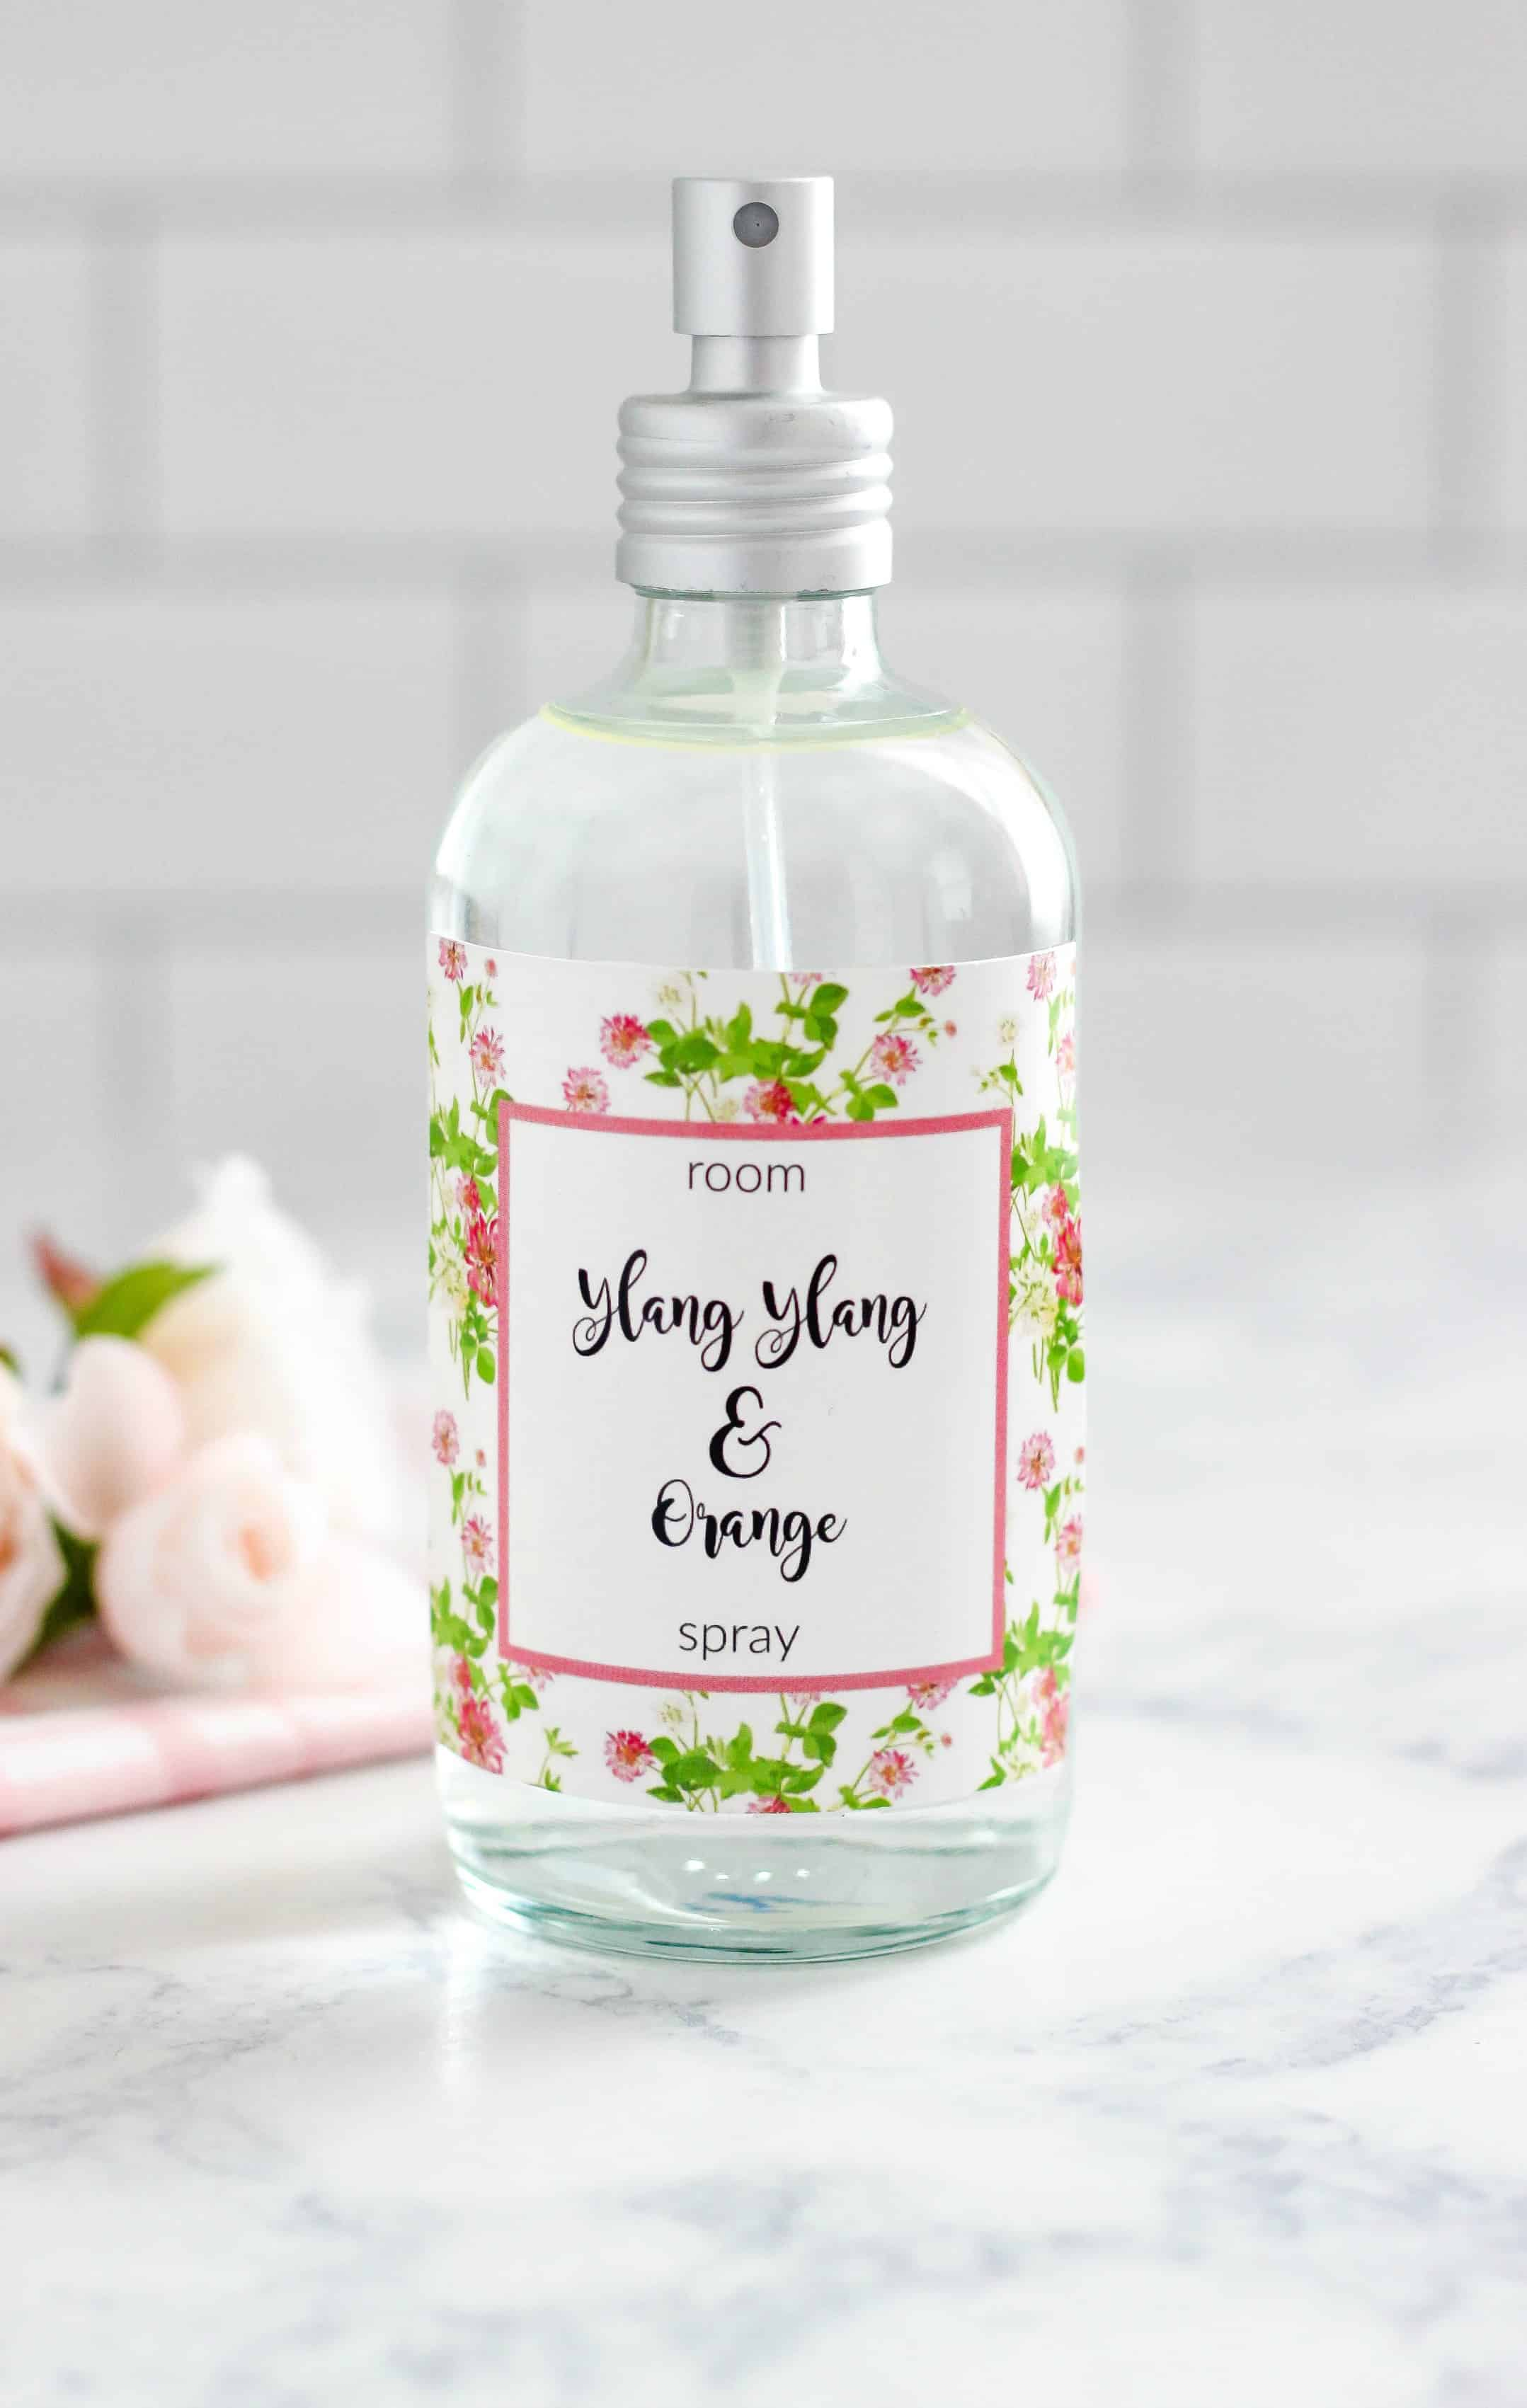 Easy to make 4 ingredient Ylang Ylang and Orange Room Spray is a natural way to freshen up a room. Plus a free printable label for a gift.